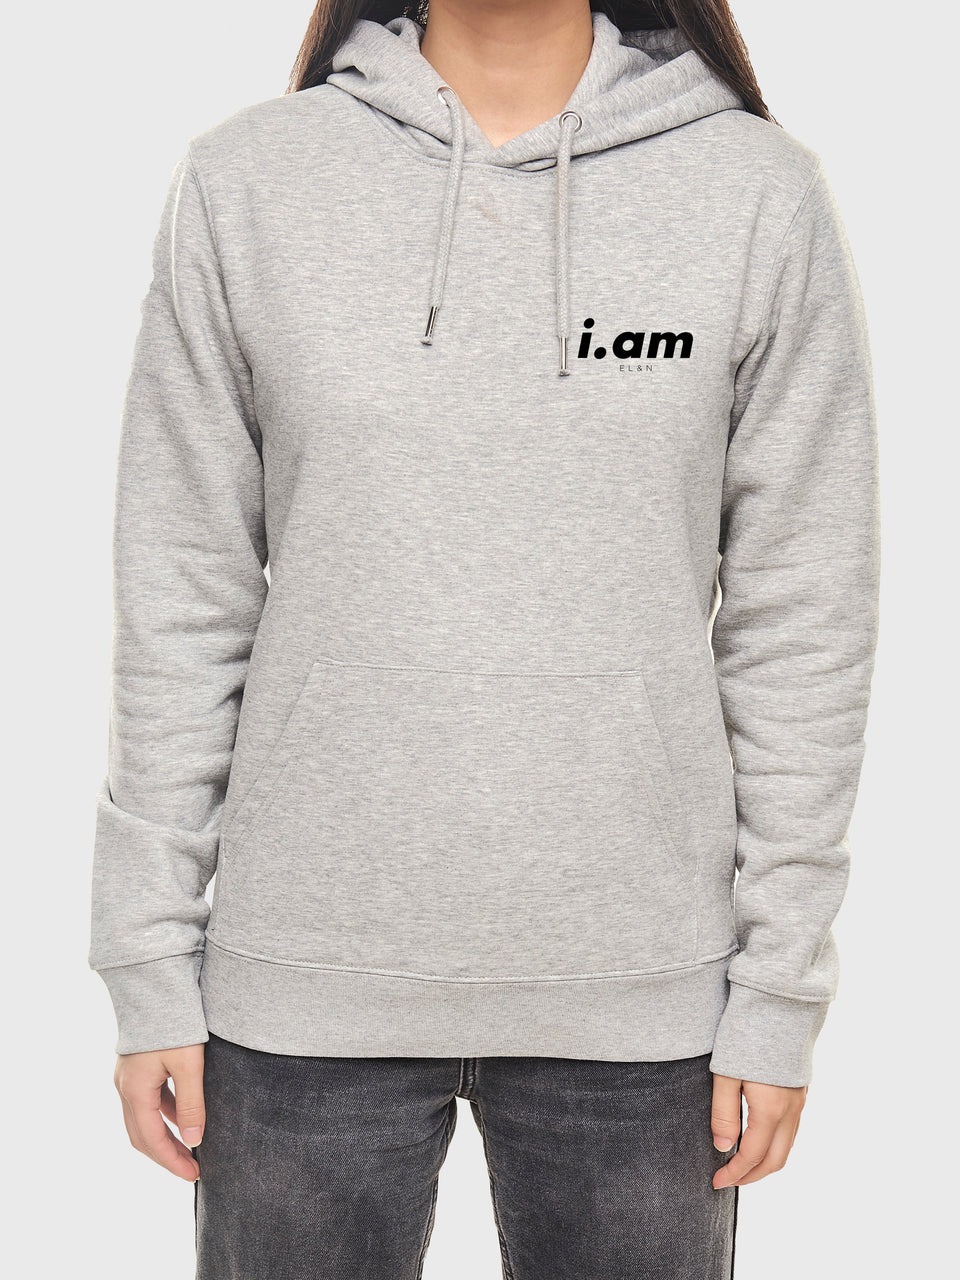 Am.bisch.ous - Grey - Unisex pull over hoodie